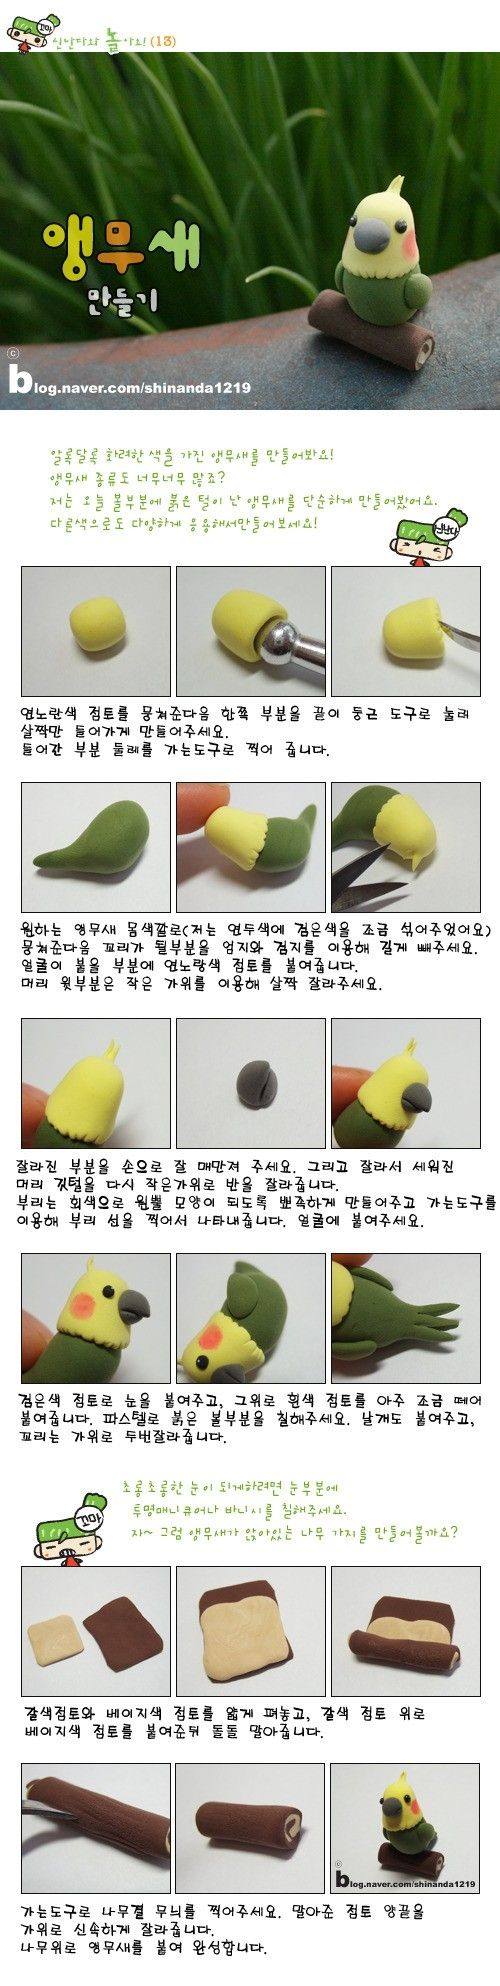 polymer clay parrot tutorial, can prob make out of gumpaste and fondant!